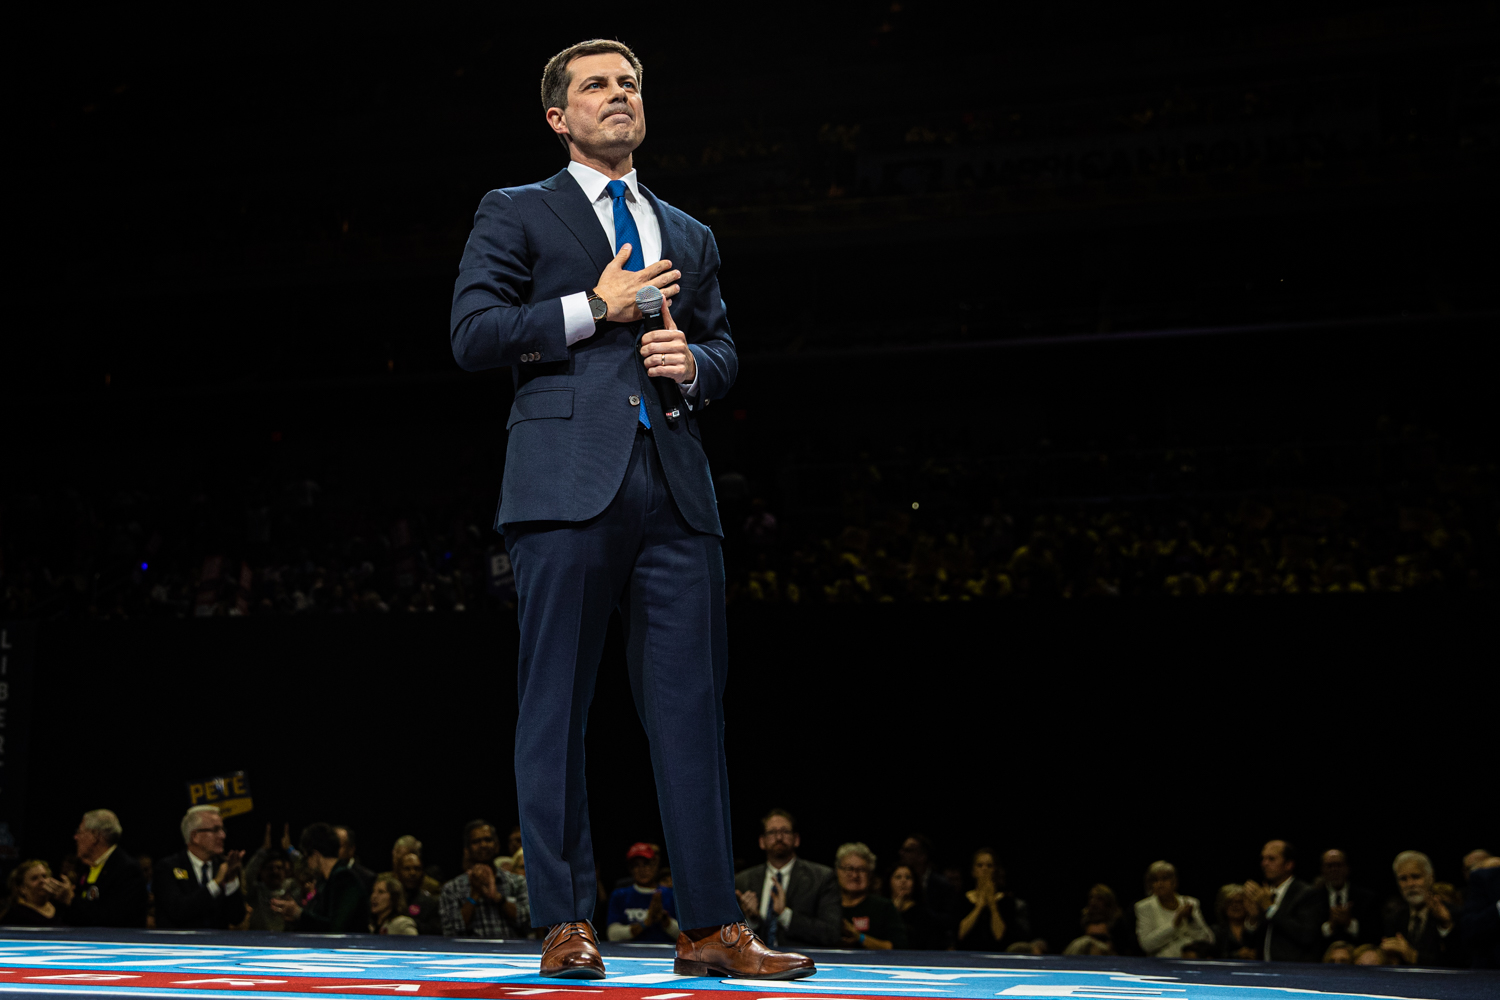 Mayor Pete Buttigieg of South Bend, IN., speaks during the 2019 Liberty and Justice Celebration at the Wells Fargo Arena in Des Moines on Friday, November 1, 2019.